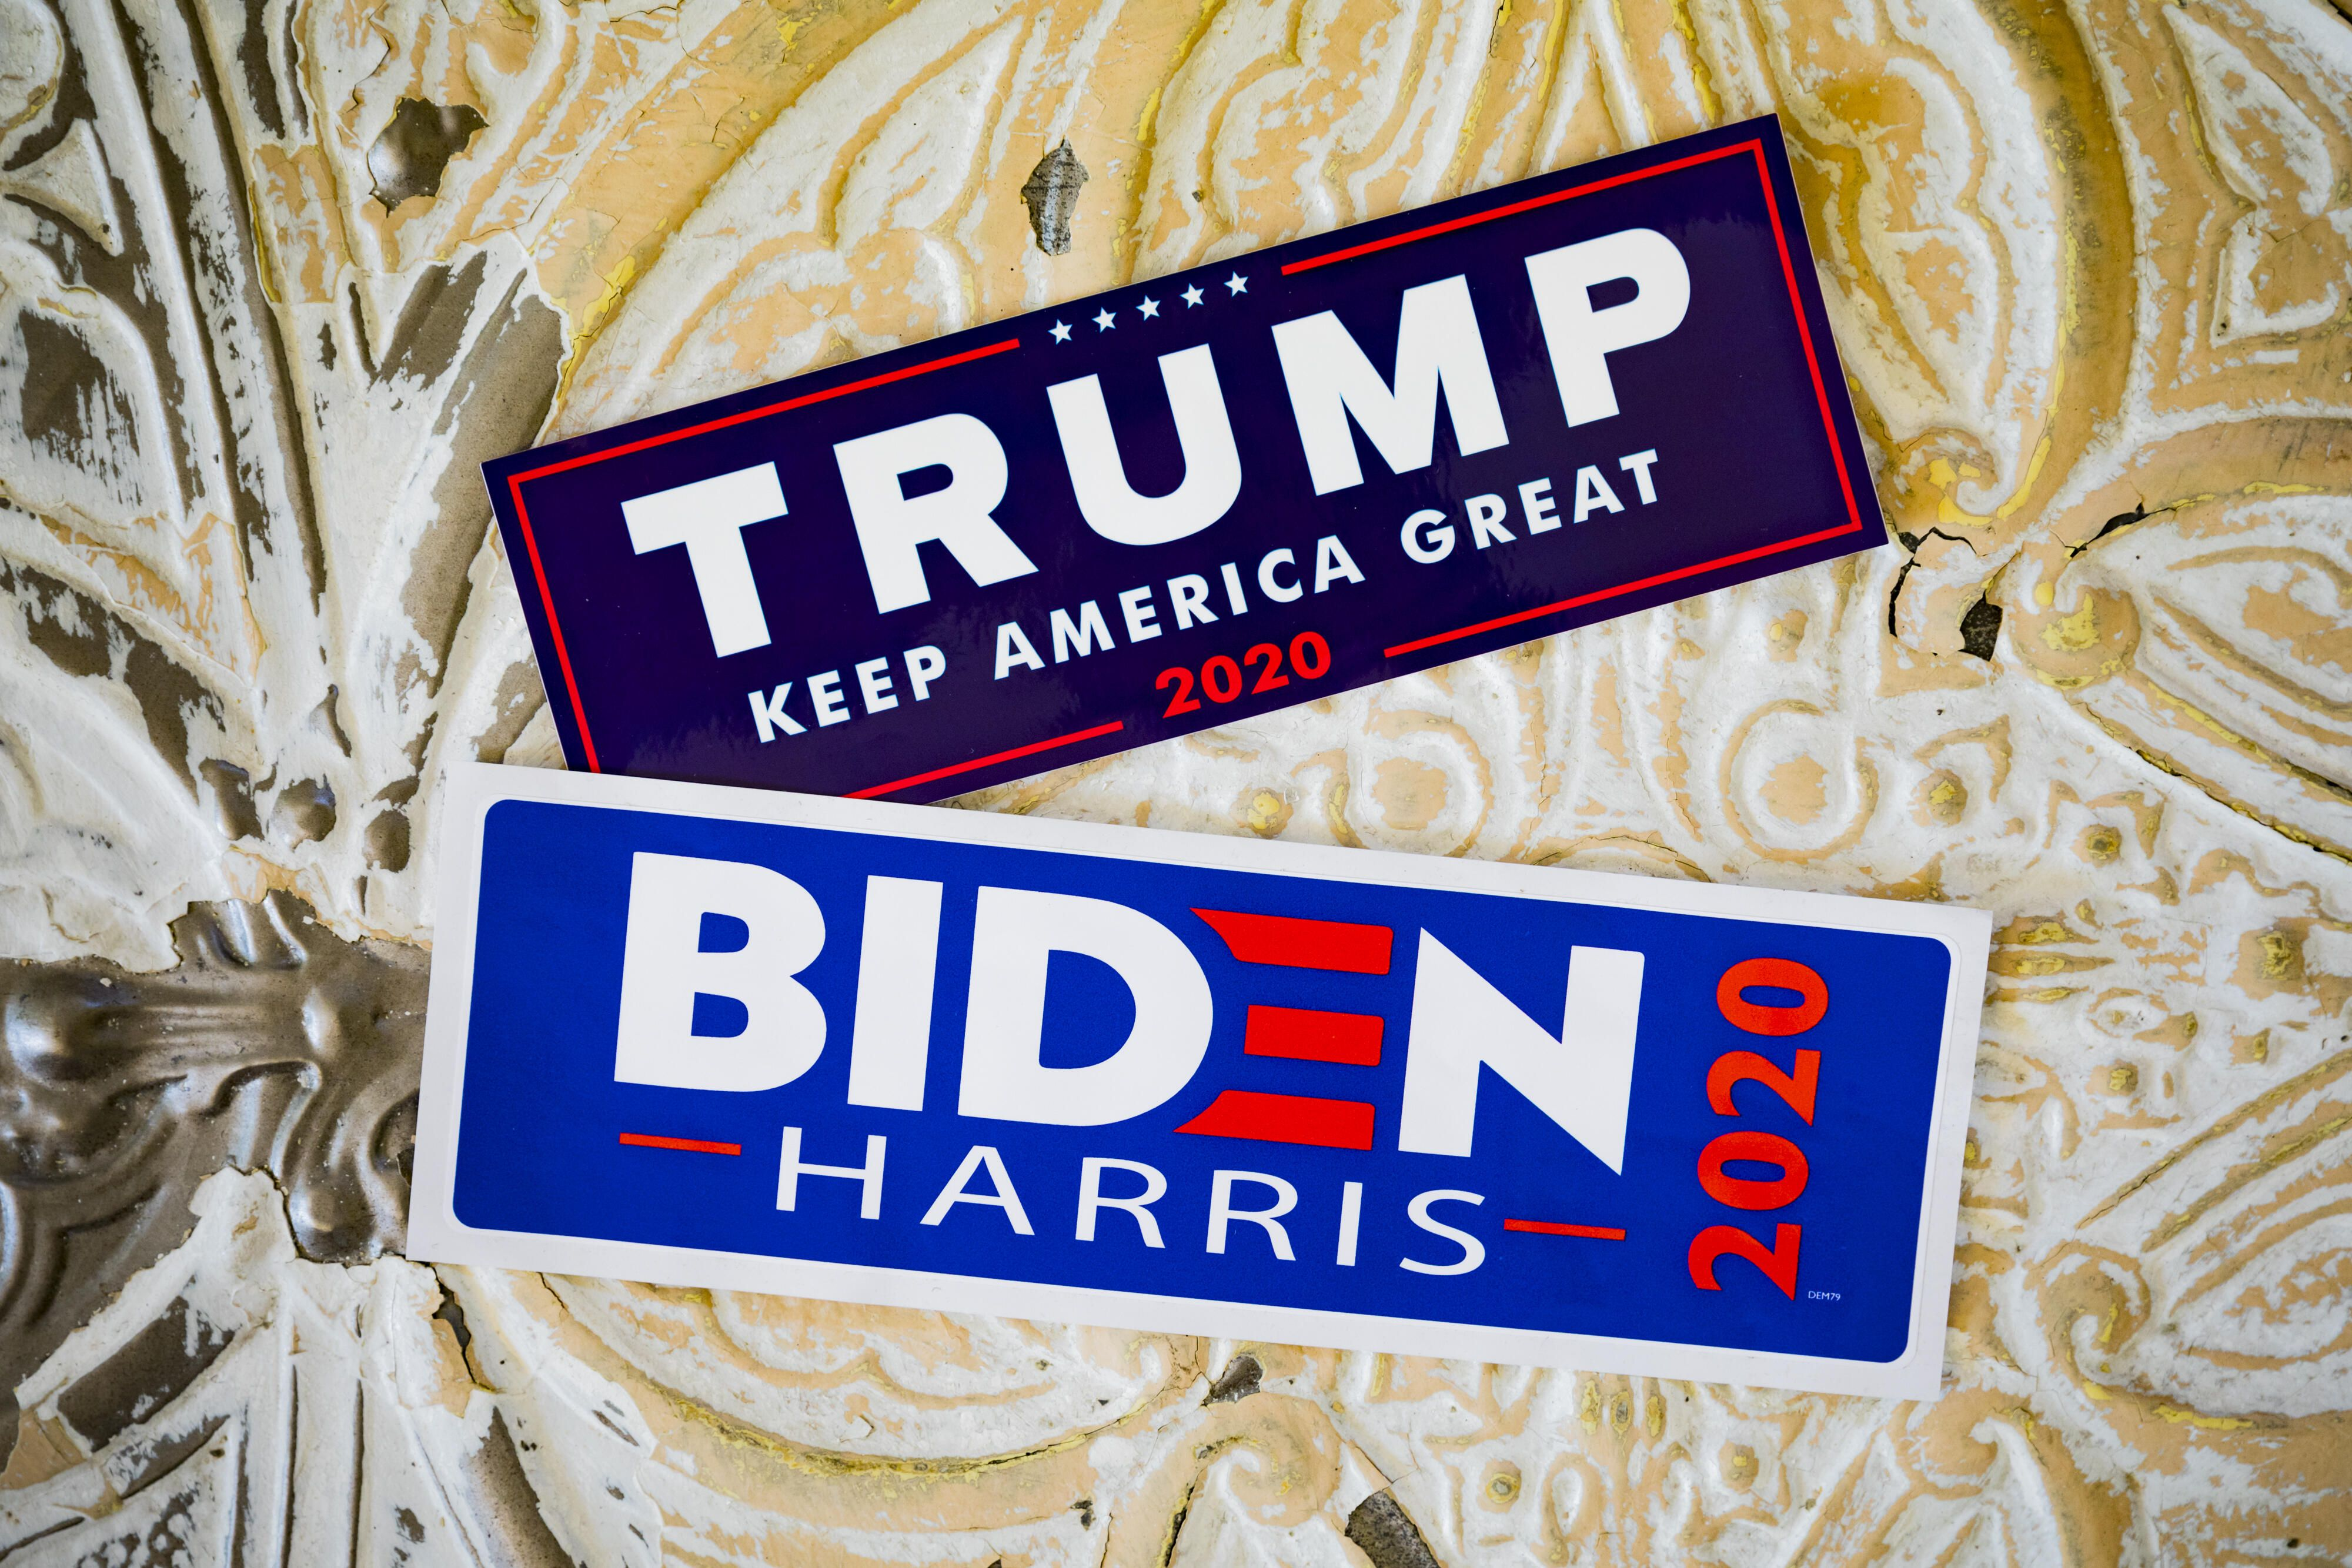 trump-pence-biden-harris-election-elections-voting-economy-food-0741